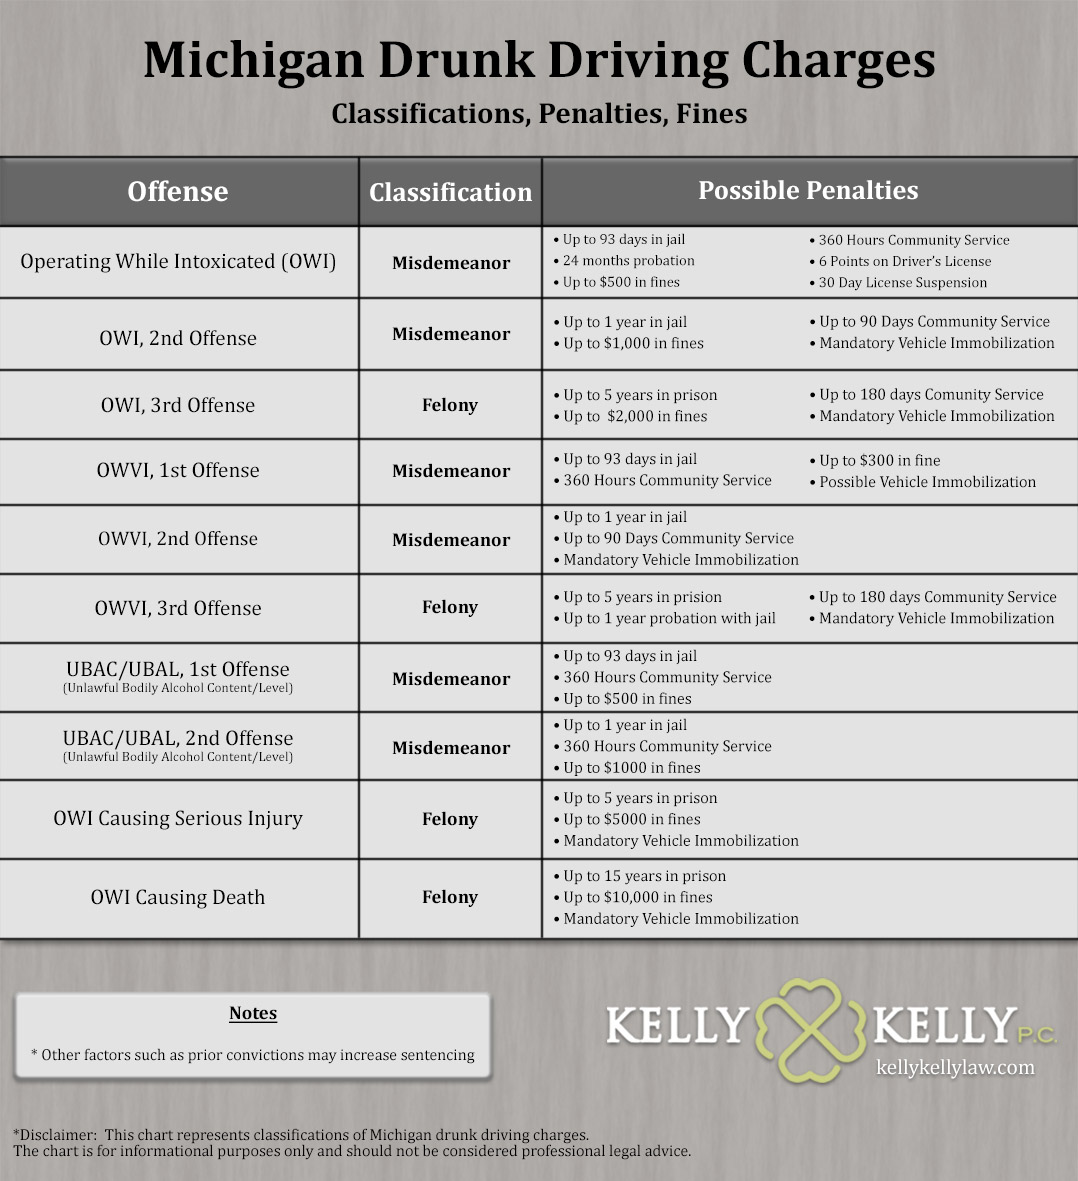 A chart showing the various degrees of drunk driving classifications, charges, and penalties in Michigan. This ranges from OWI punishable by up to 93 days in jail all the way up to OWI causing death punishable by up to 15 years in prison